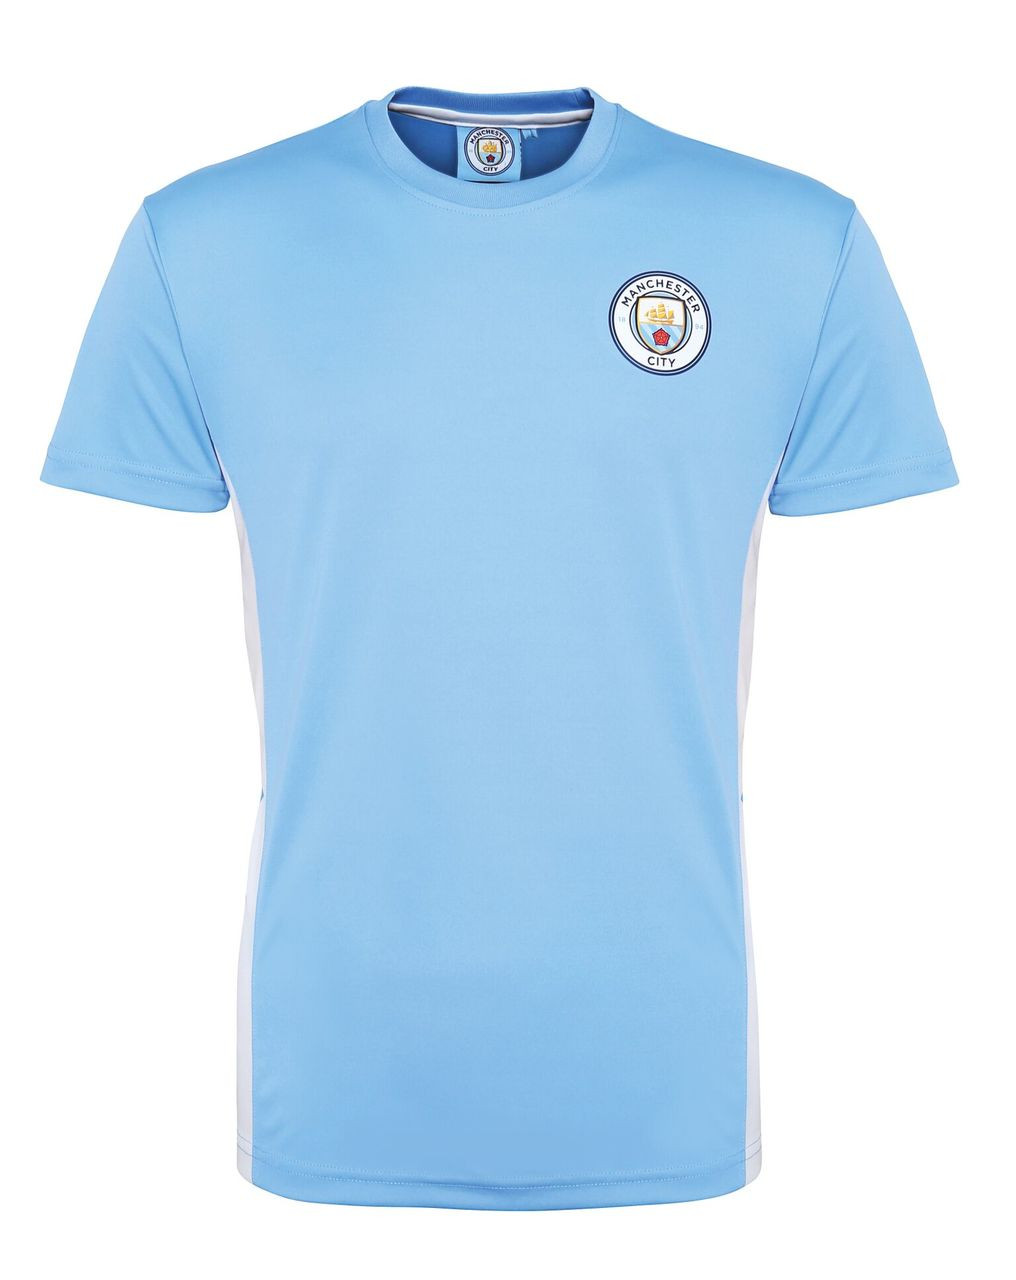 5afd148b245 Manchester City Adults T-Shirt - Speed One Sports